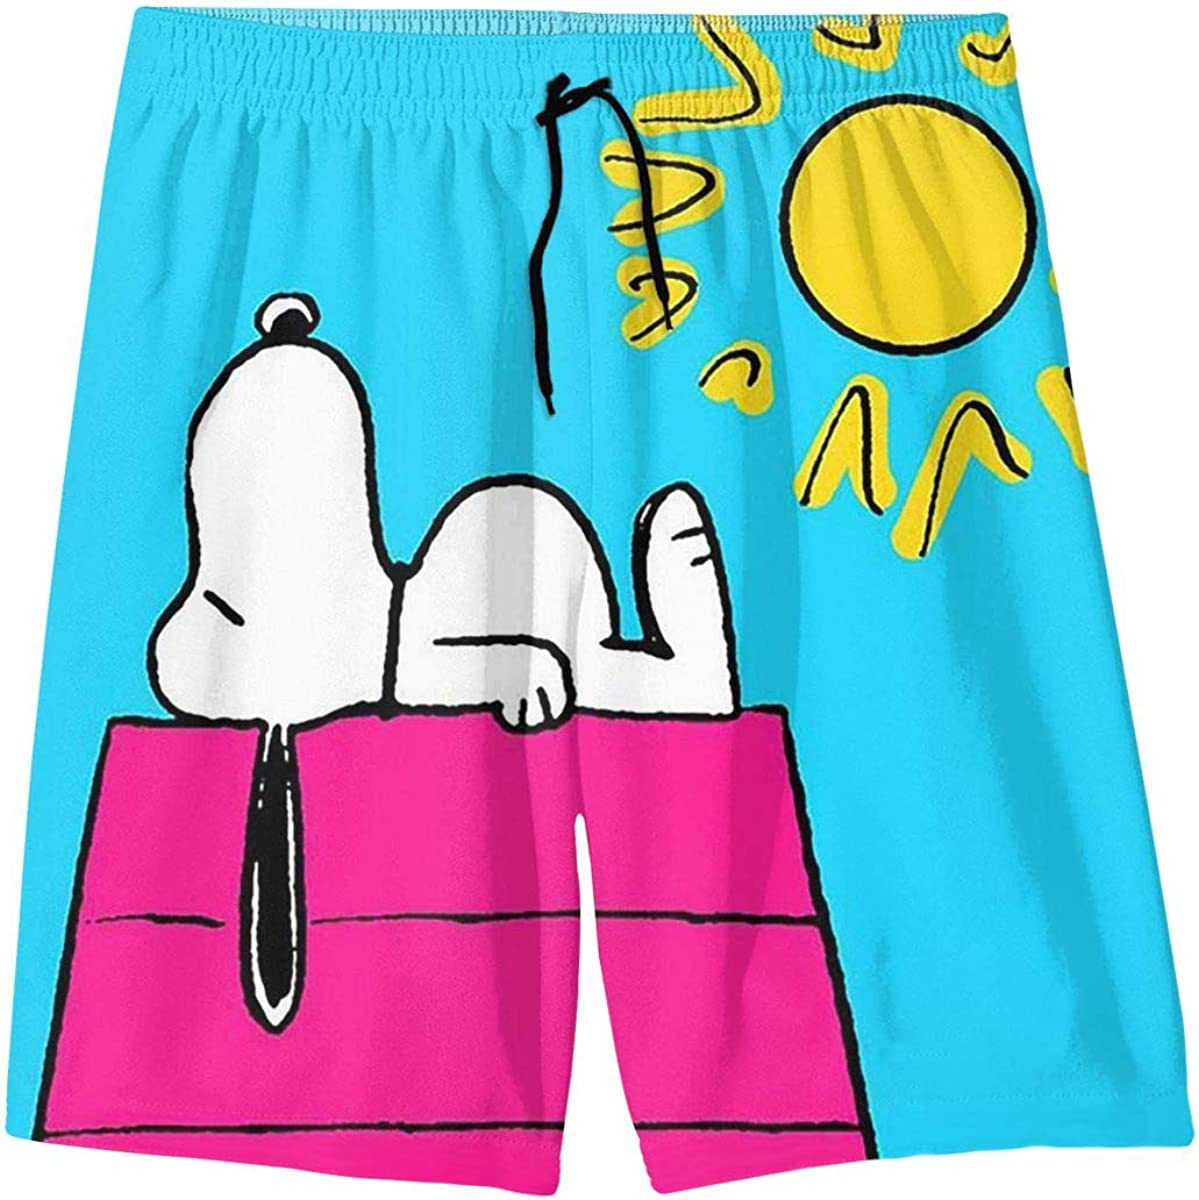 Swim Trunks Sunny Day Snoopy Quick Dry Beach Board Shorts Bathing Suit with Side Pockets for Teen Boys